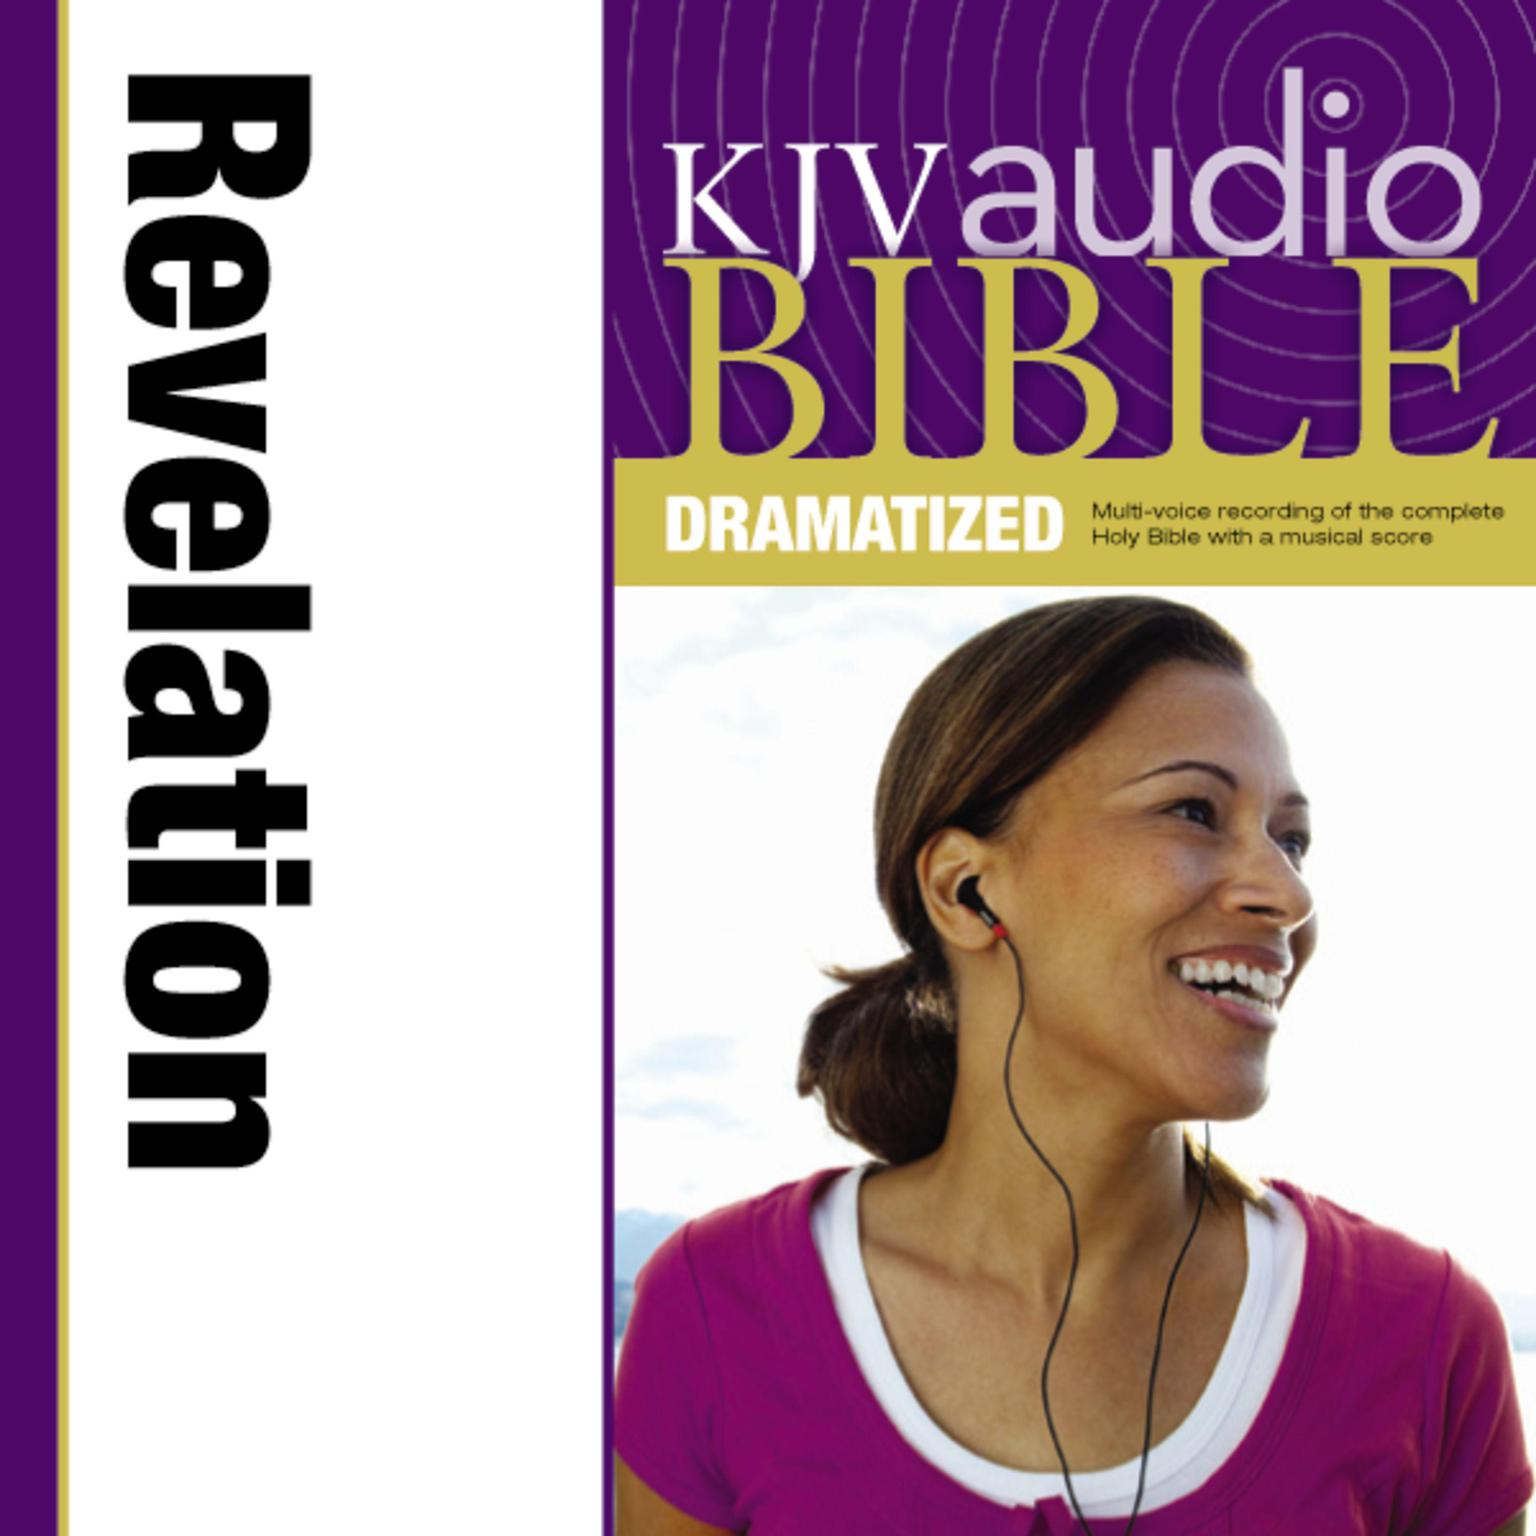 Printable KJV, Audio Bible, Dramatized: Revelation, Audio Download Audiobook Cover Art